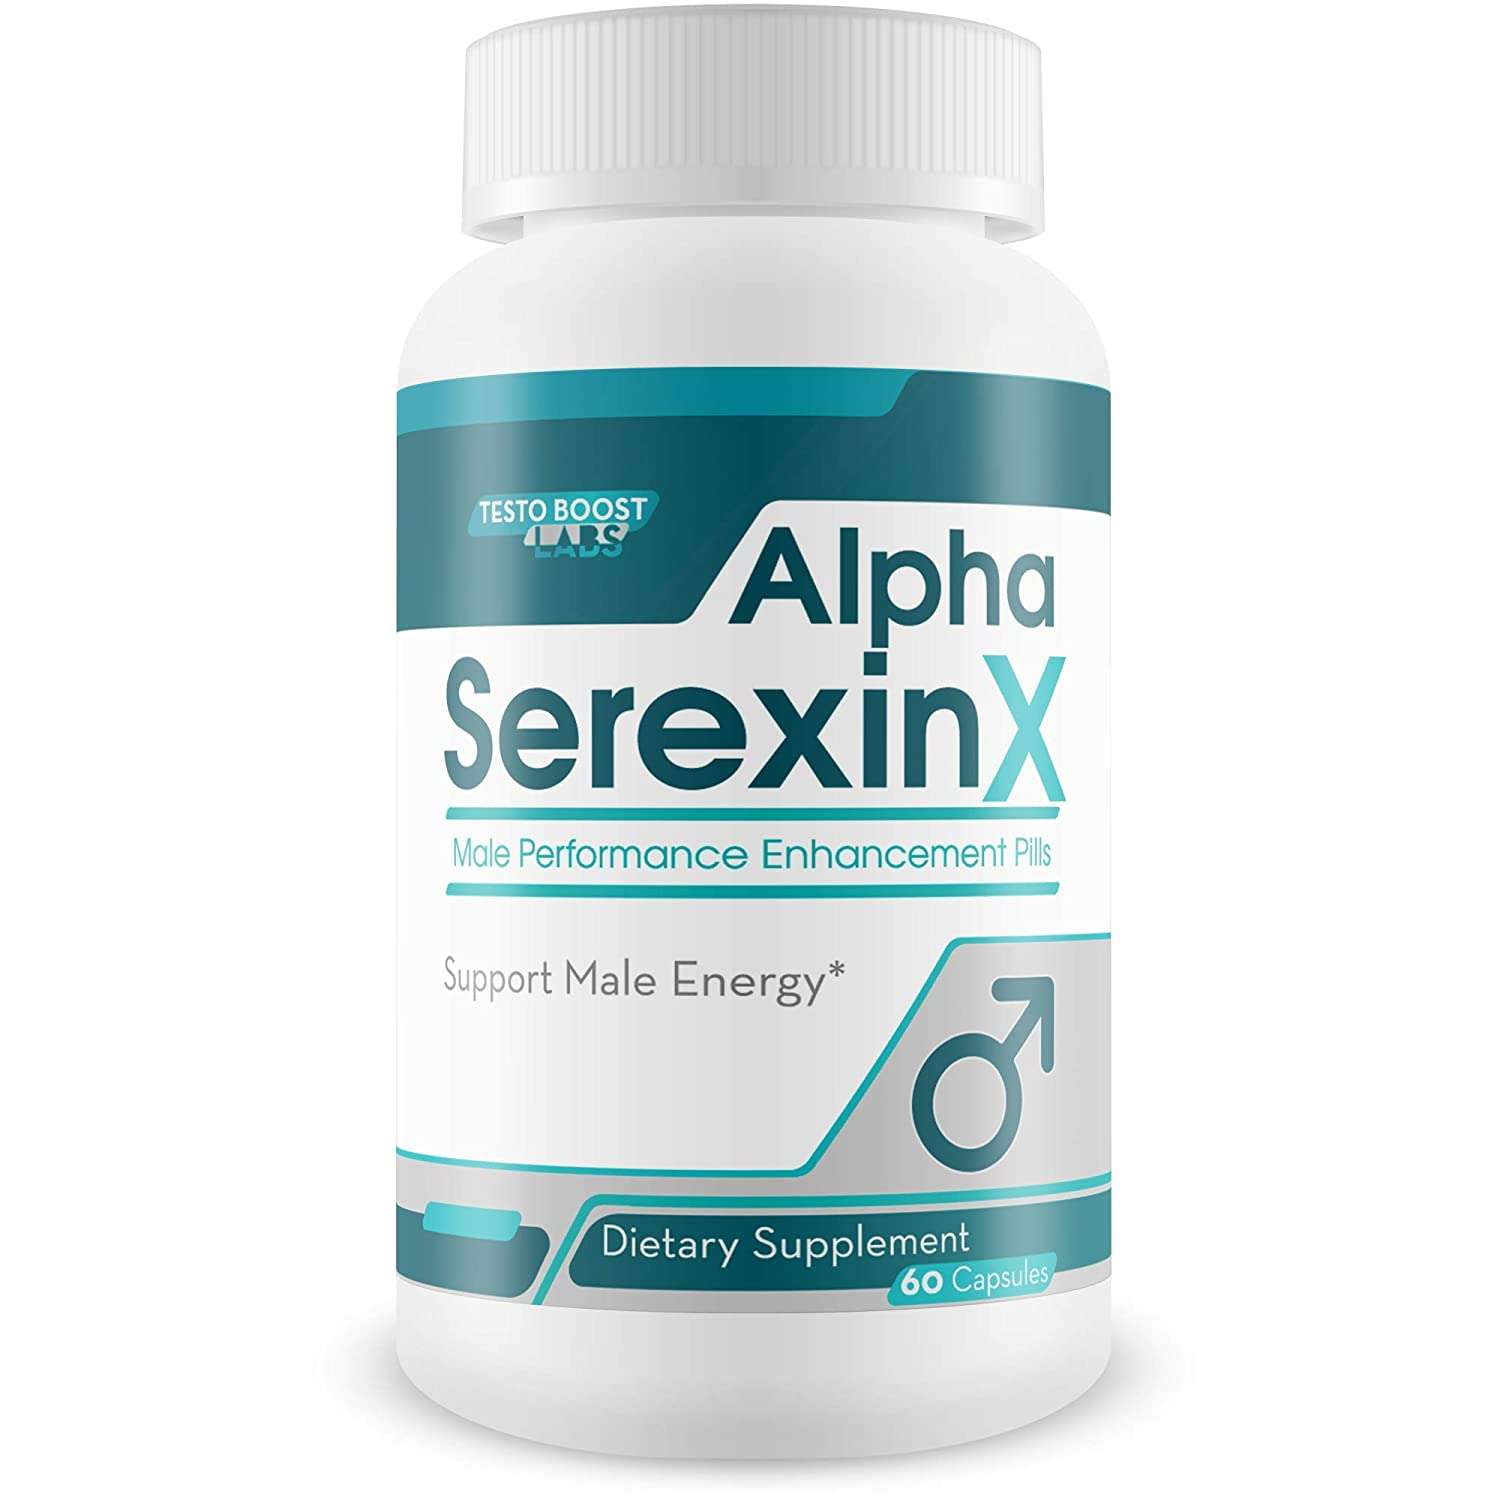 Alpha Serexin X – Male Performance Enhancement Pills – Support Youthful Energy, Drive, Stamina, and Motivation – Made with Yohimbe Ginseng for Ultra Last XXL Power, Focus, and Supreme Vigor –